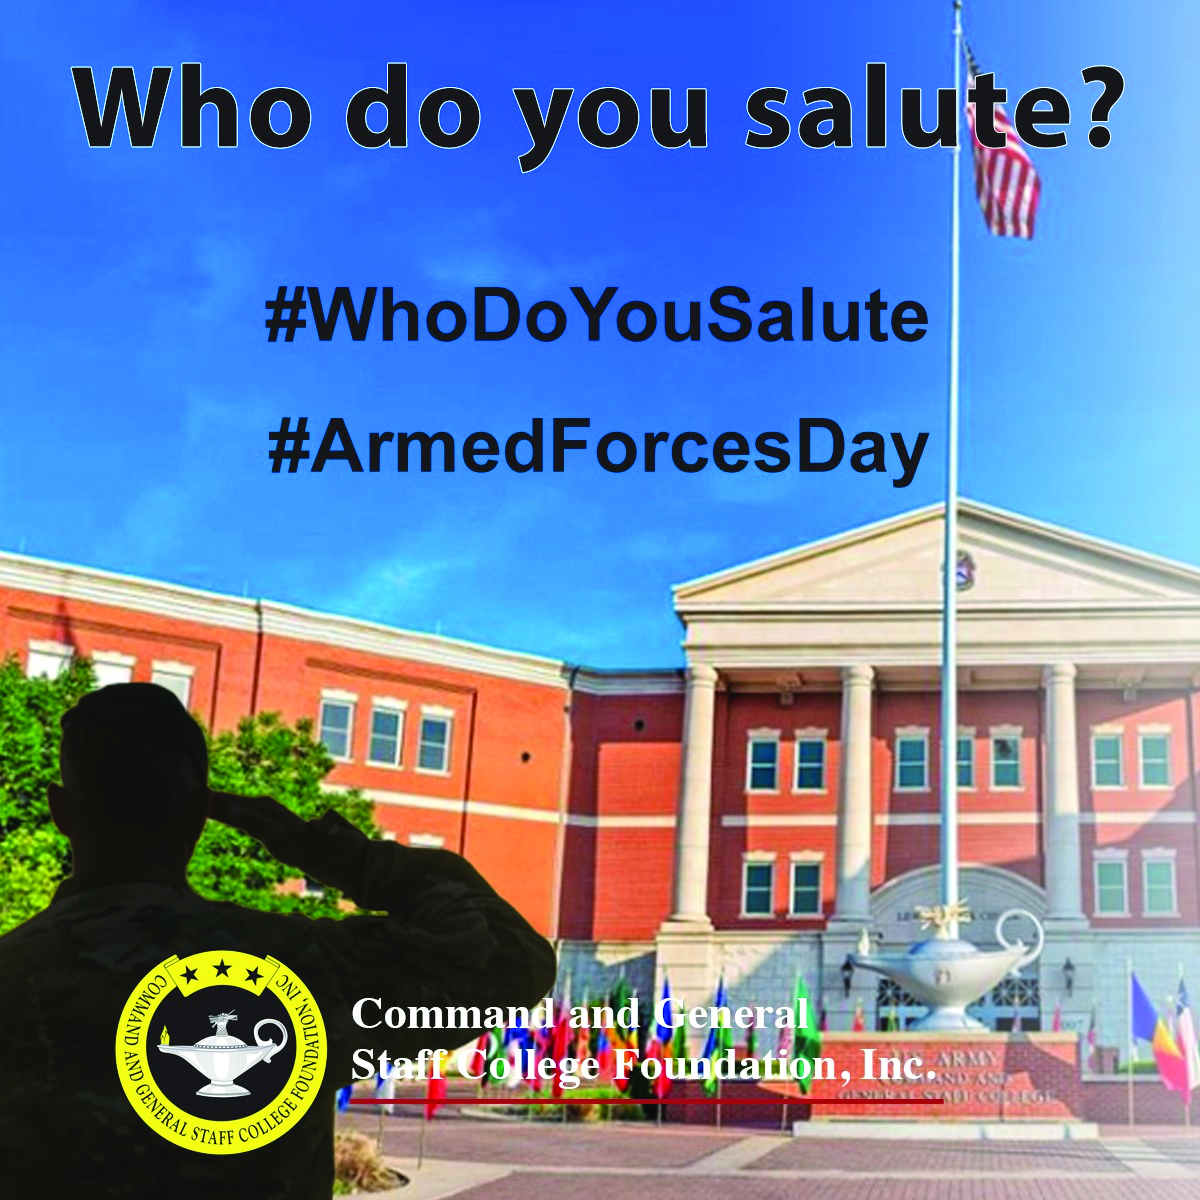 Armed Forces Day: Who Do You Salute?